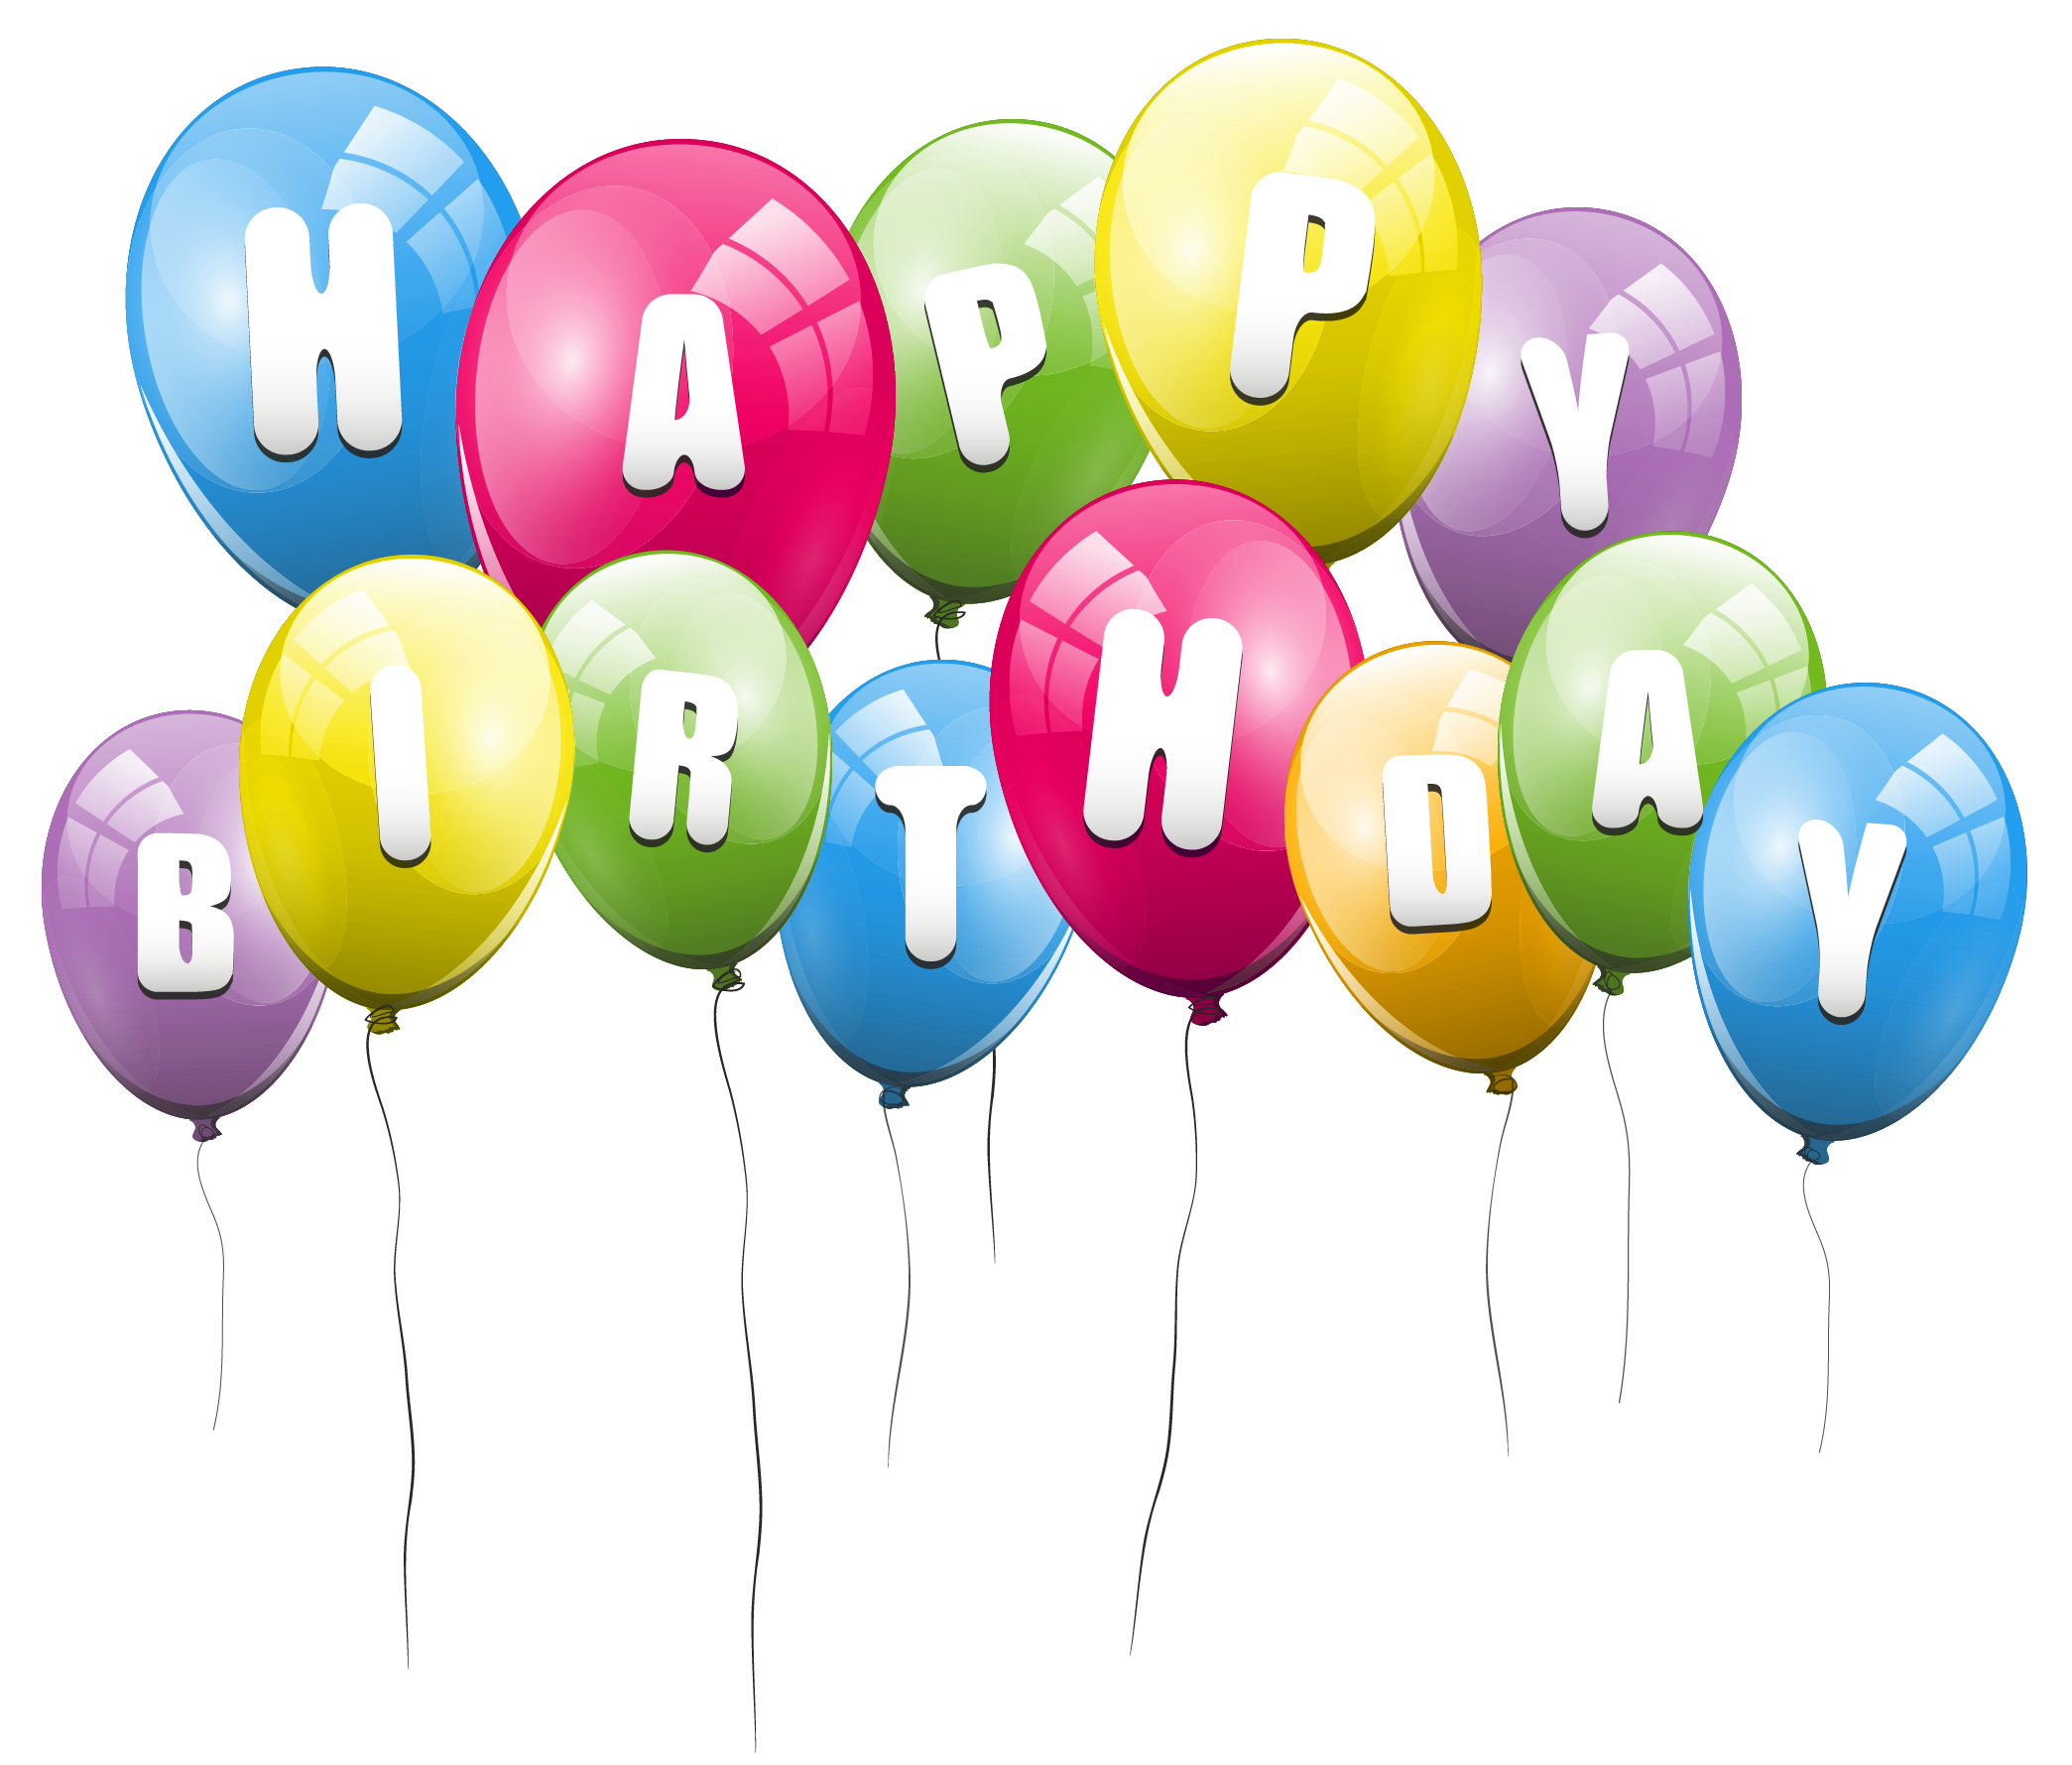 Happy birthday background png. Transparent balloons picture clipart